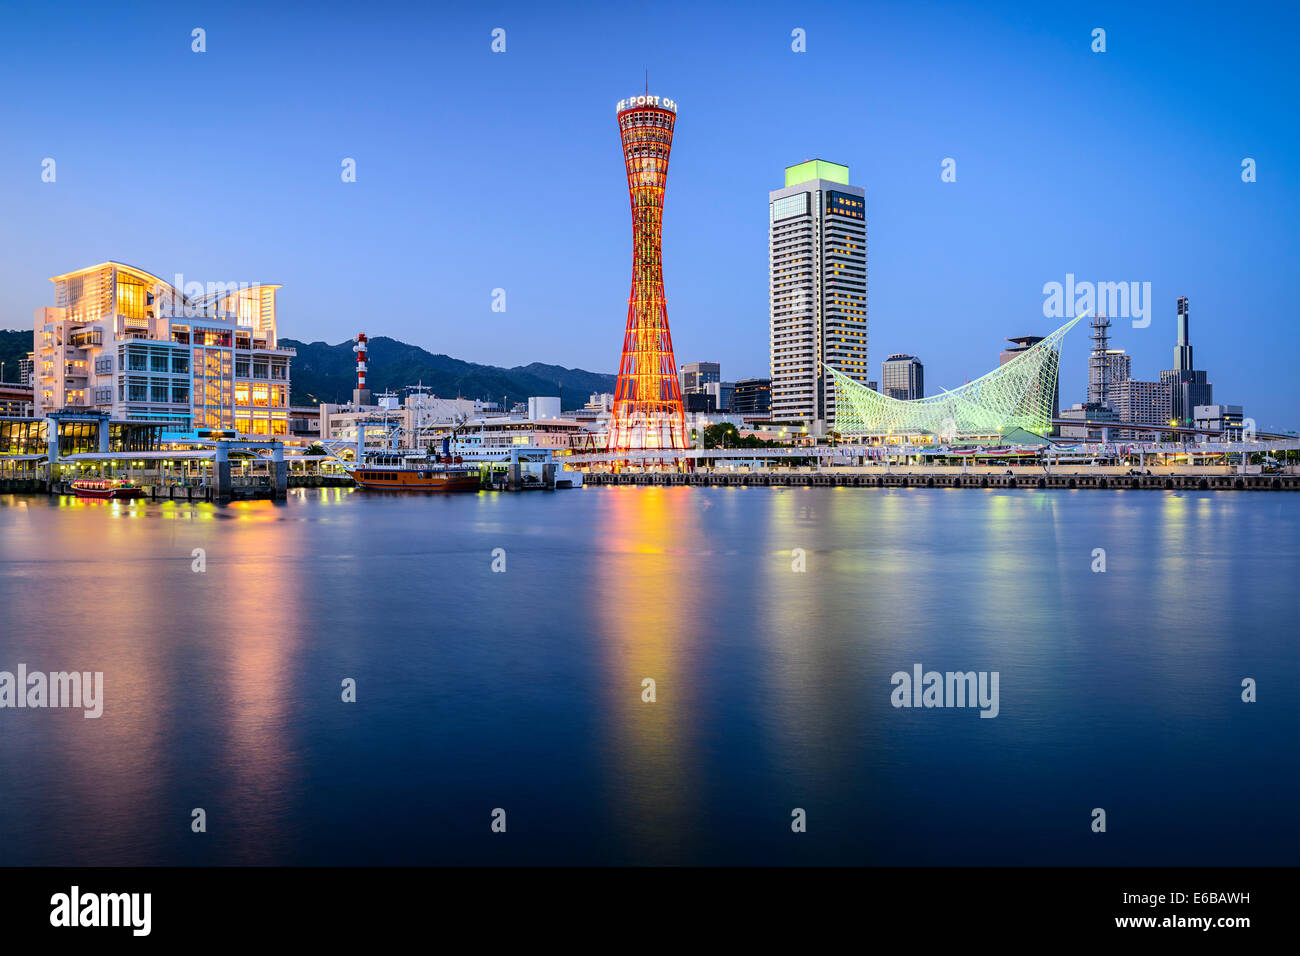 Skyline of Kobe, Japan at the port. - Stock Image